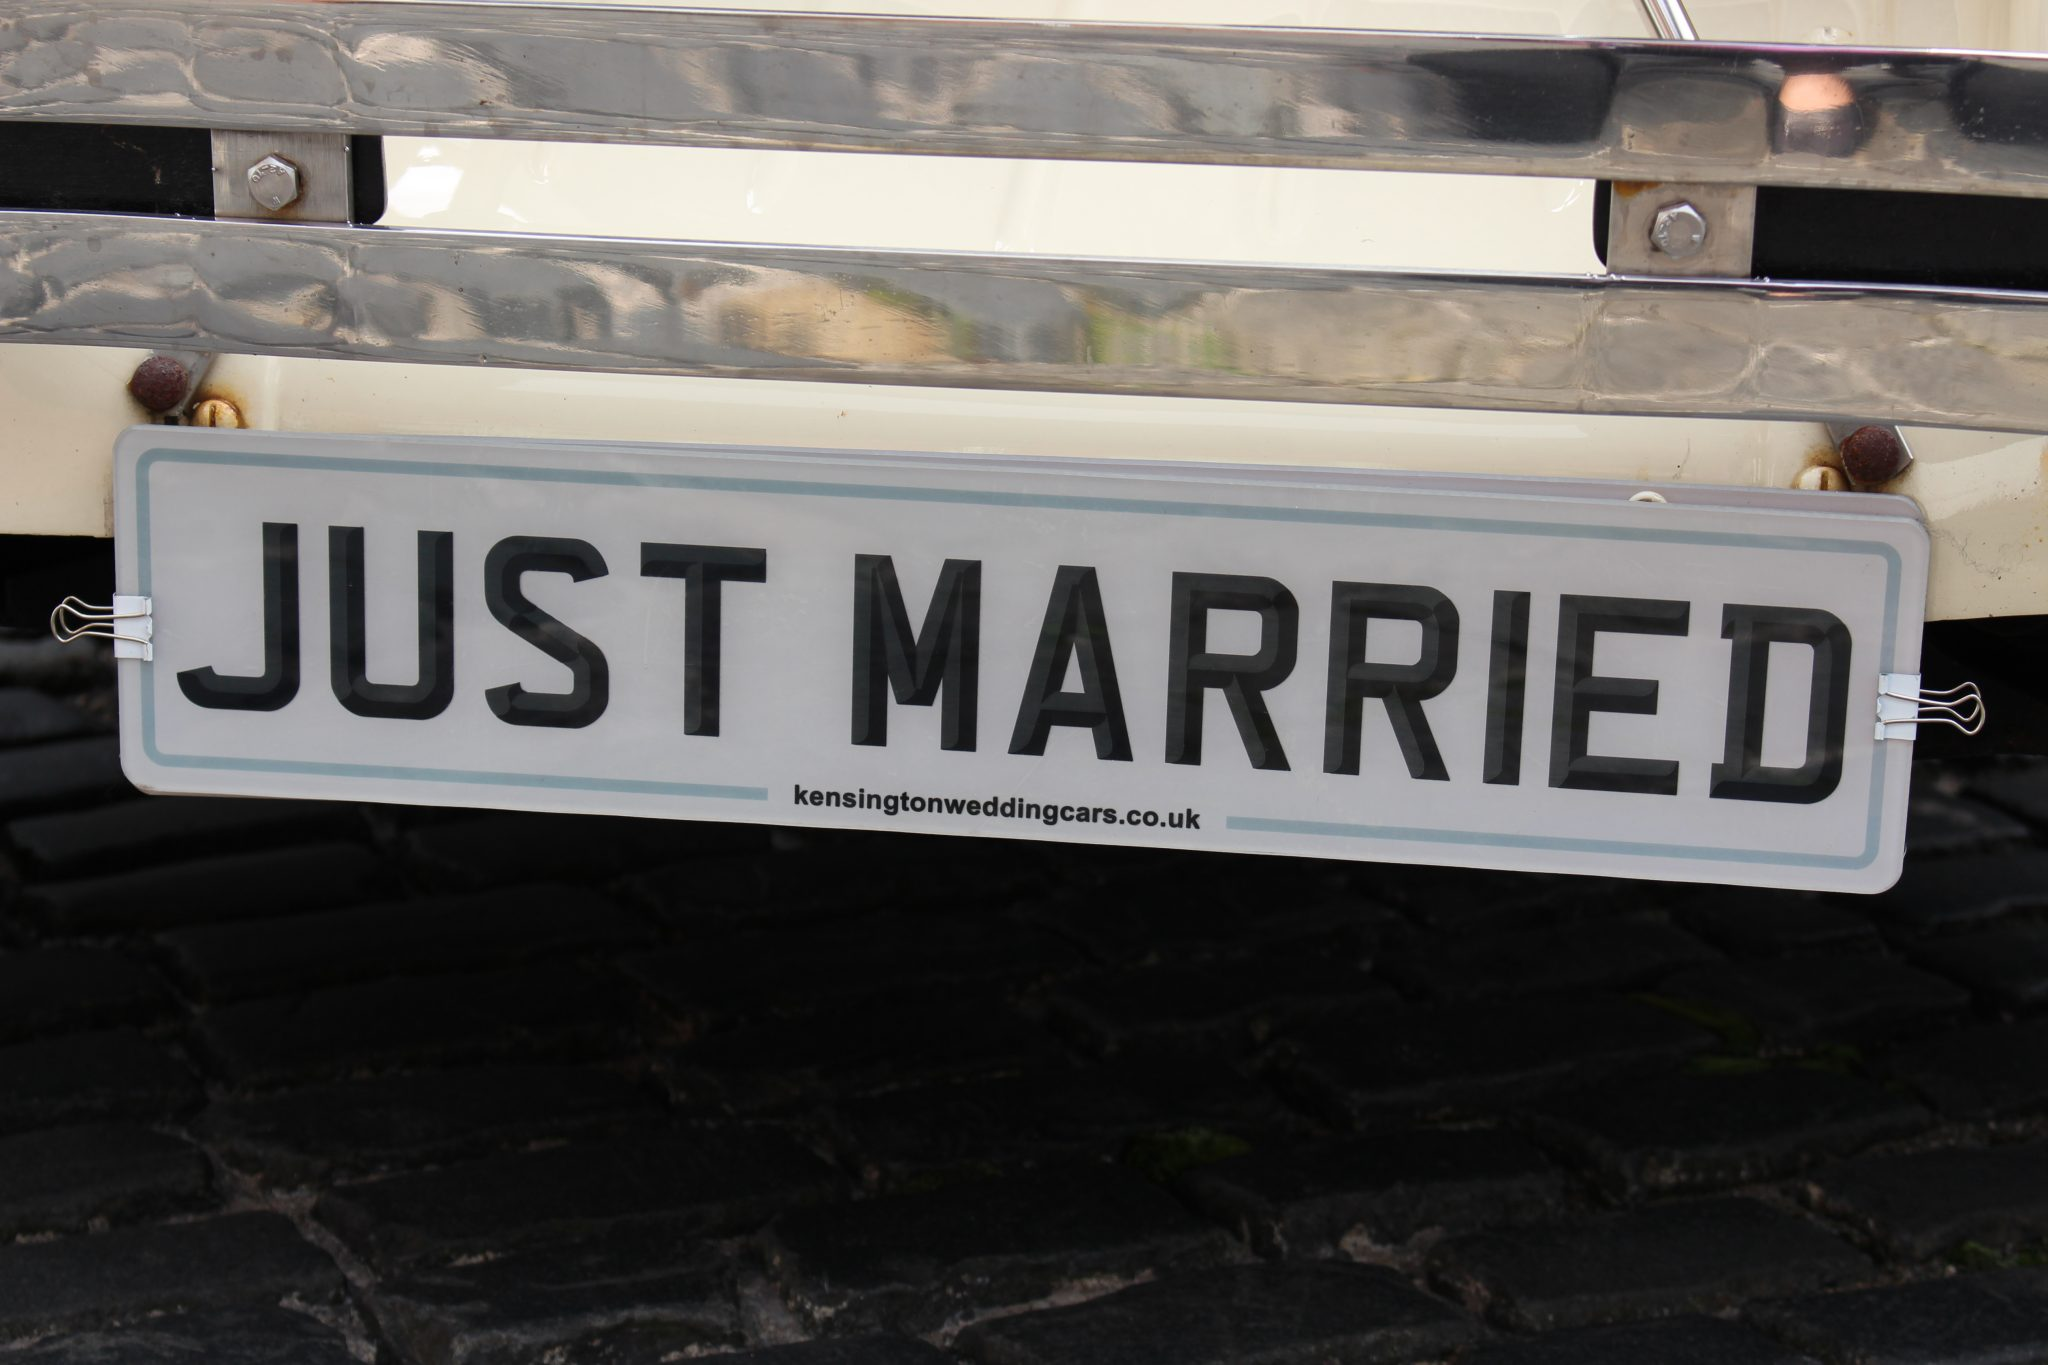 Just married - a Manchester wedding video